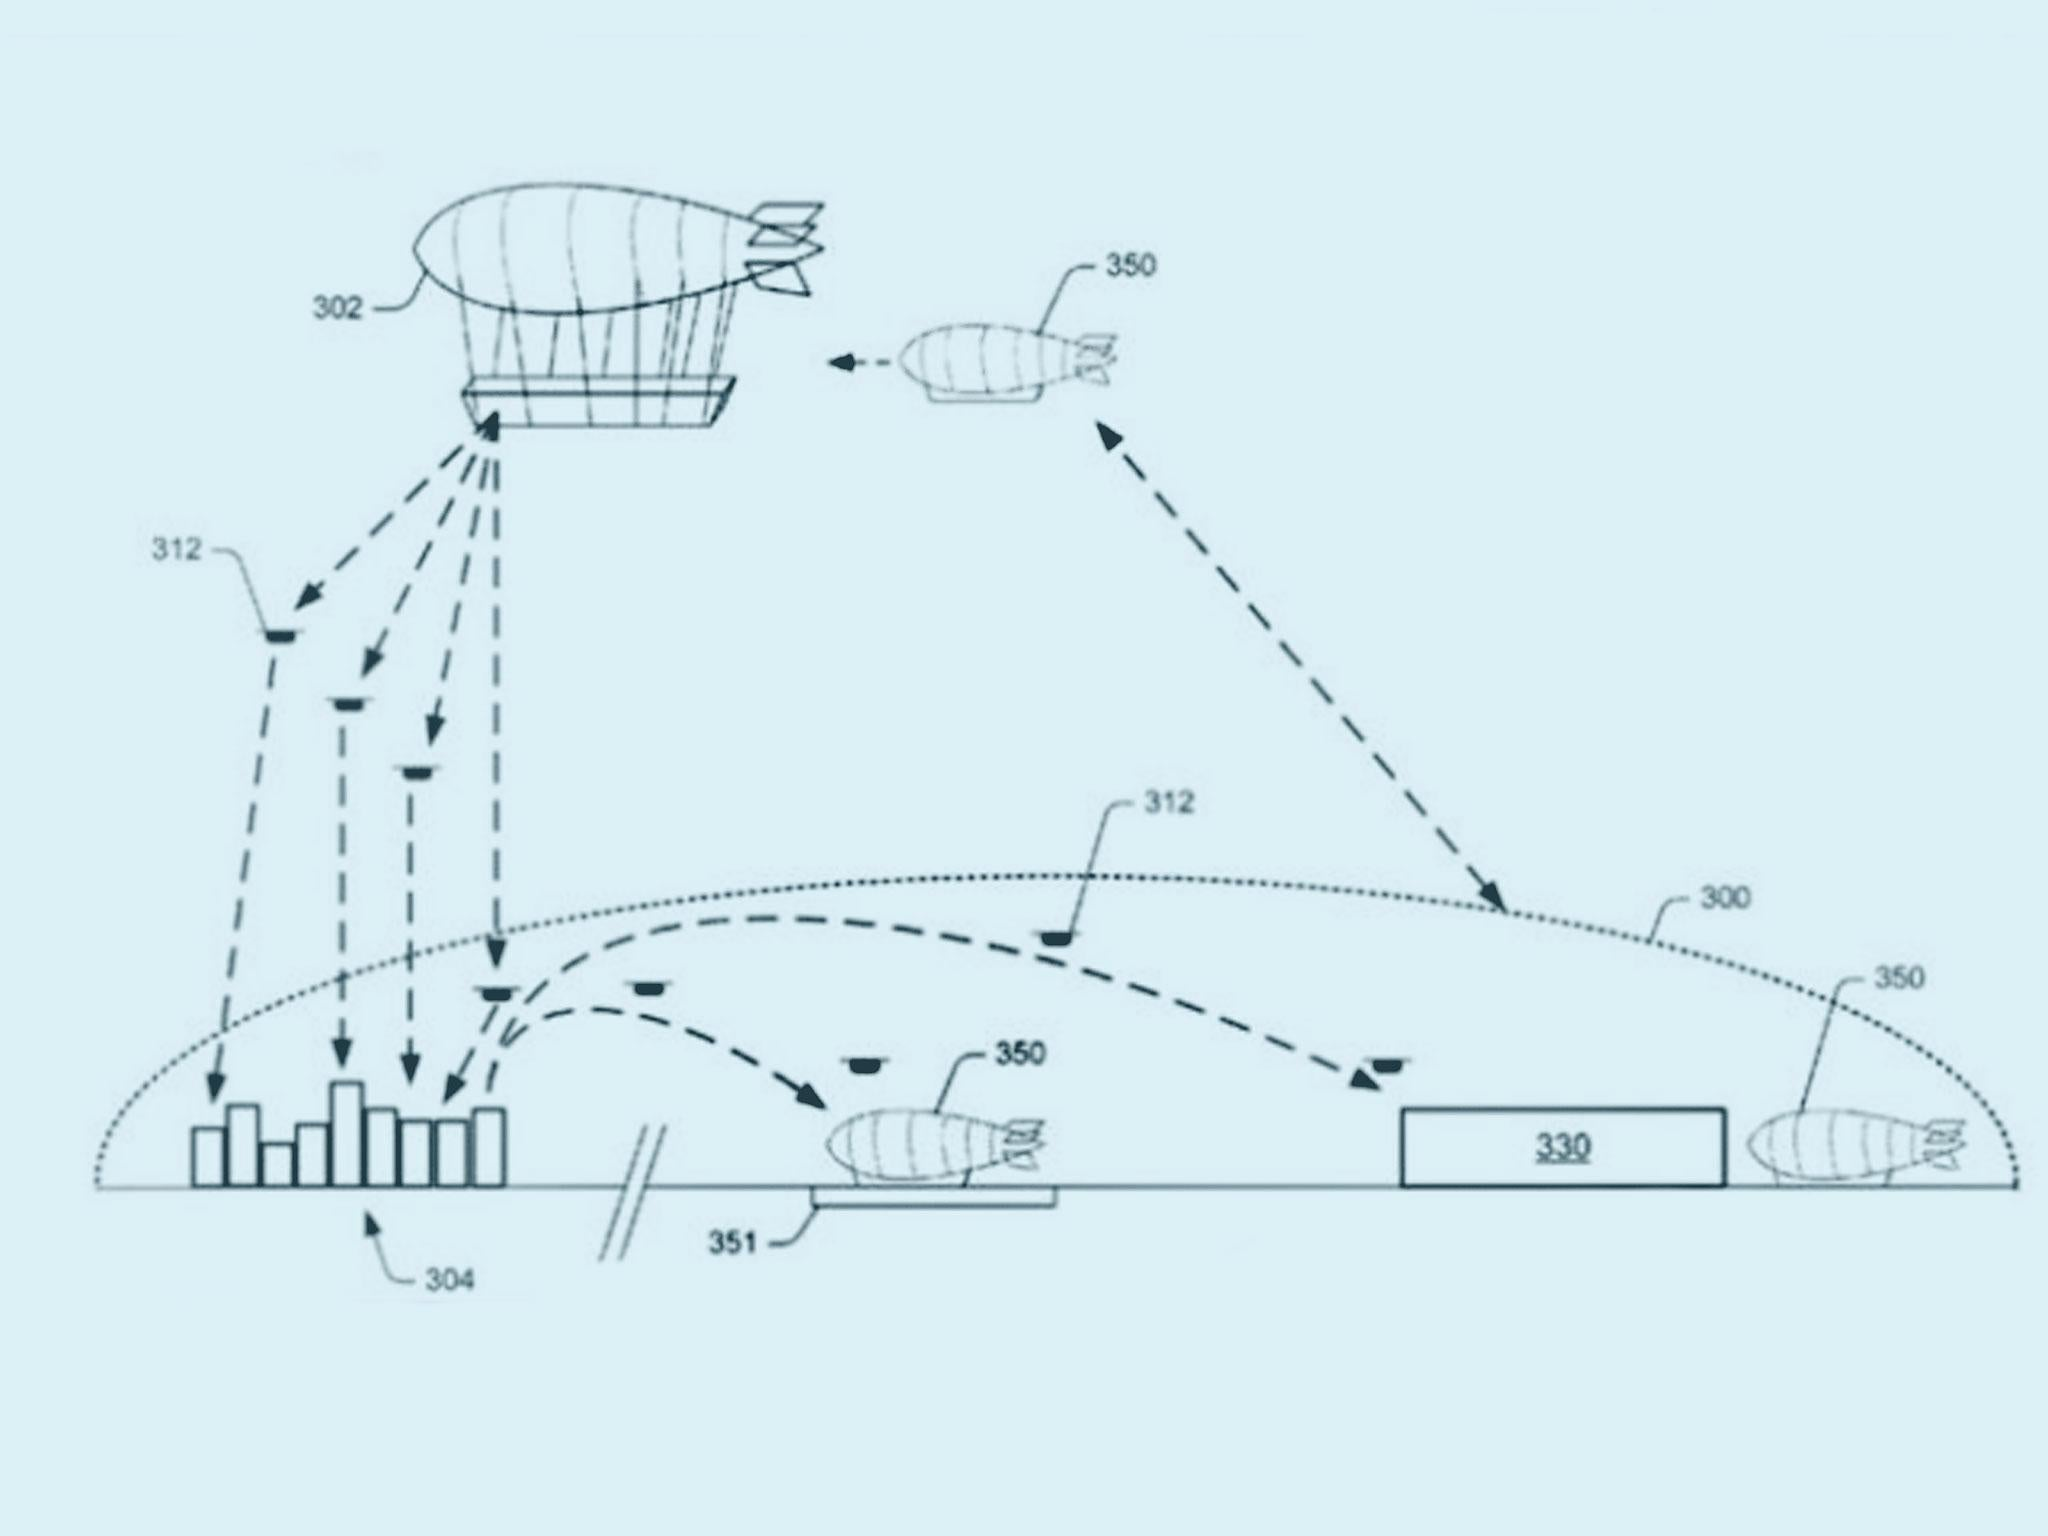 Amazon files patent for flying warehouse equipped with drones